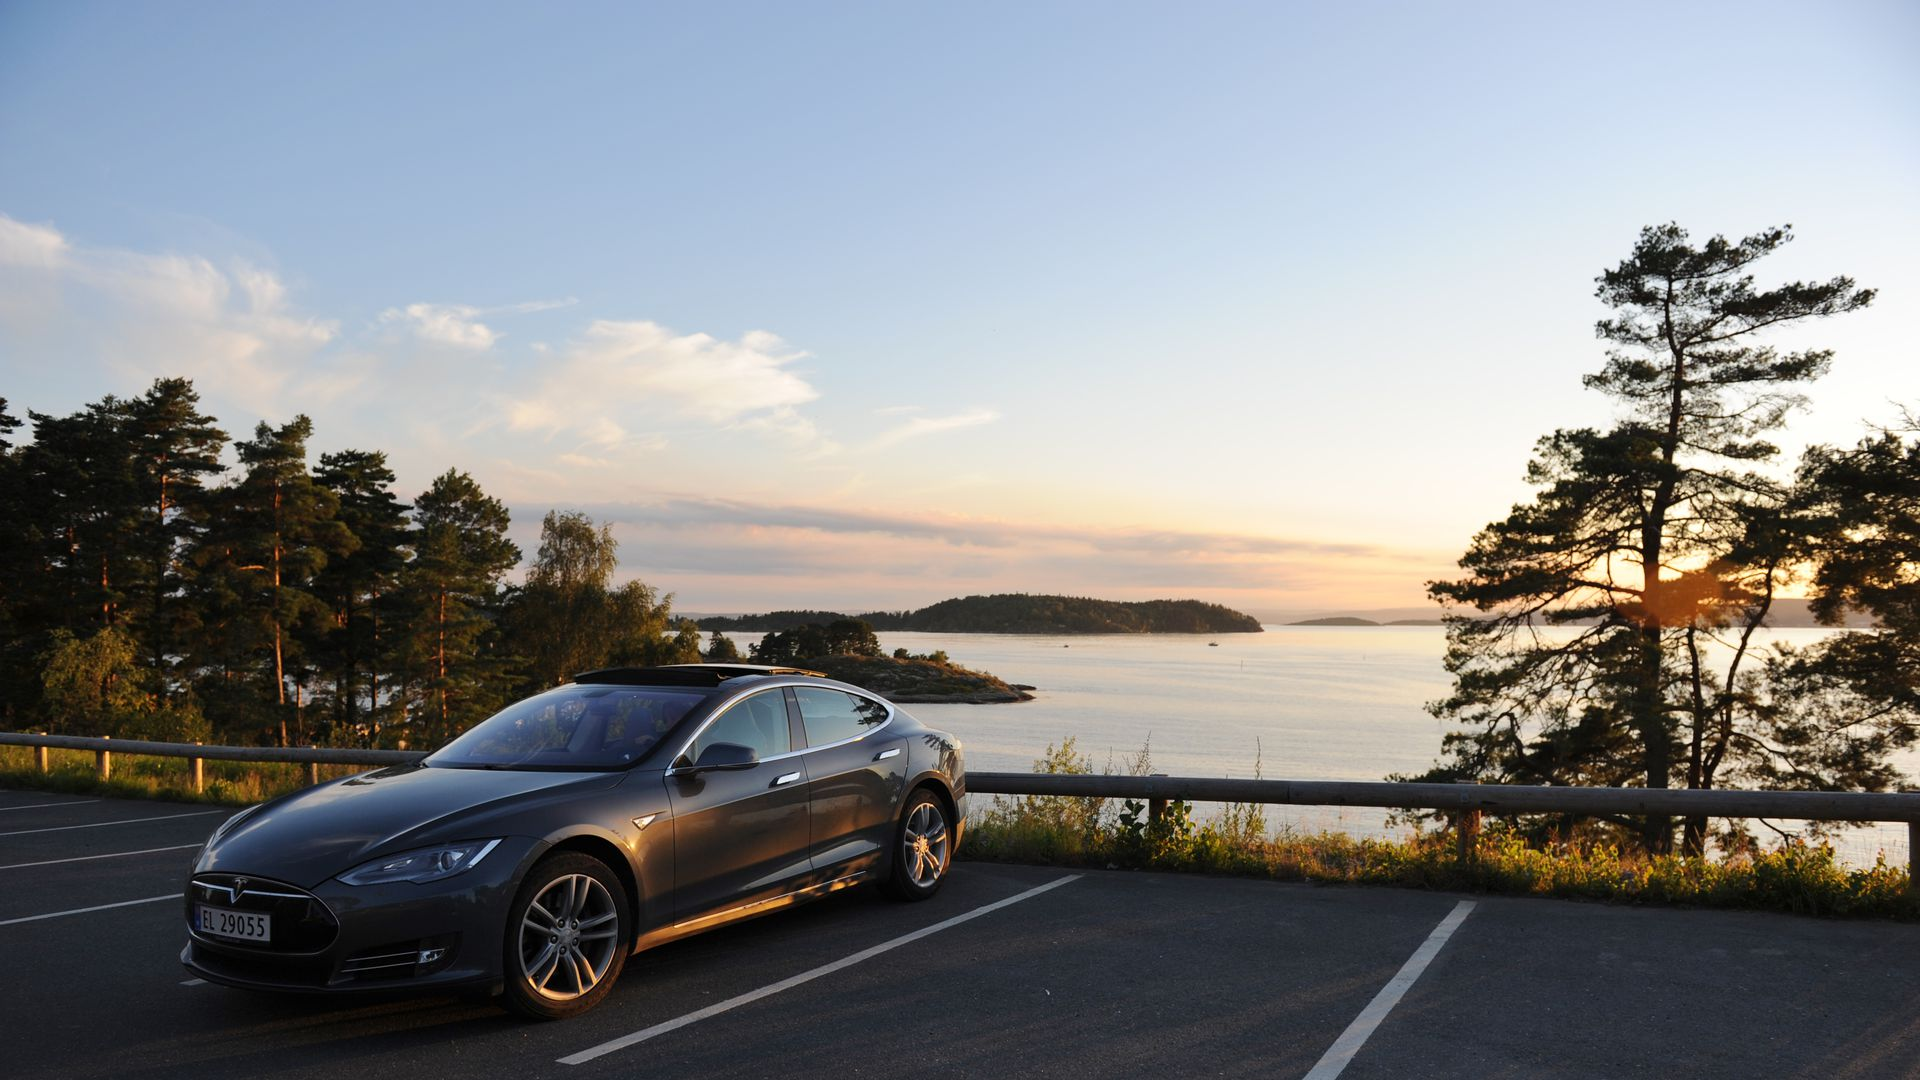 A Tesla electric car is parked at the coast of Son, South of Oslo, Norway, 03 August 2015.